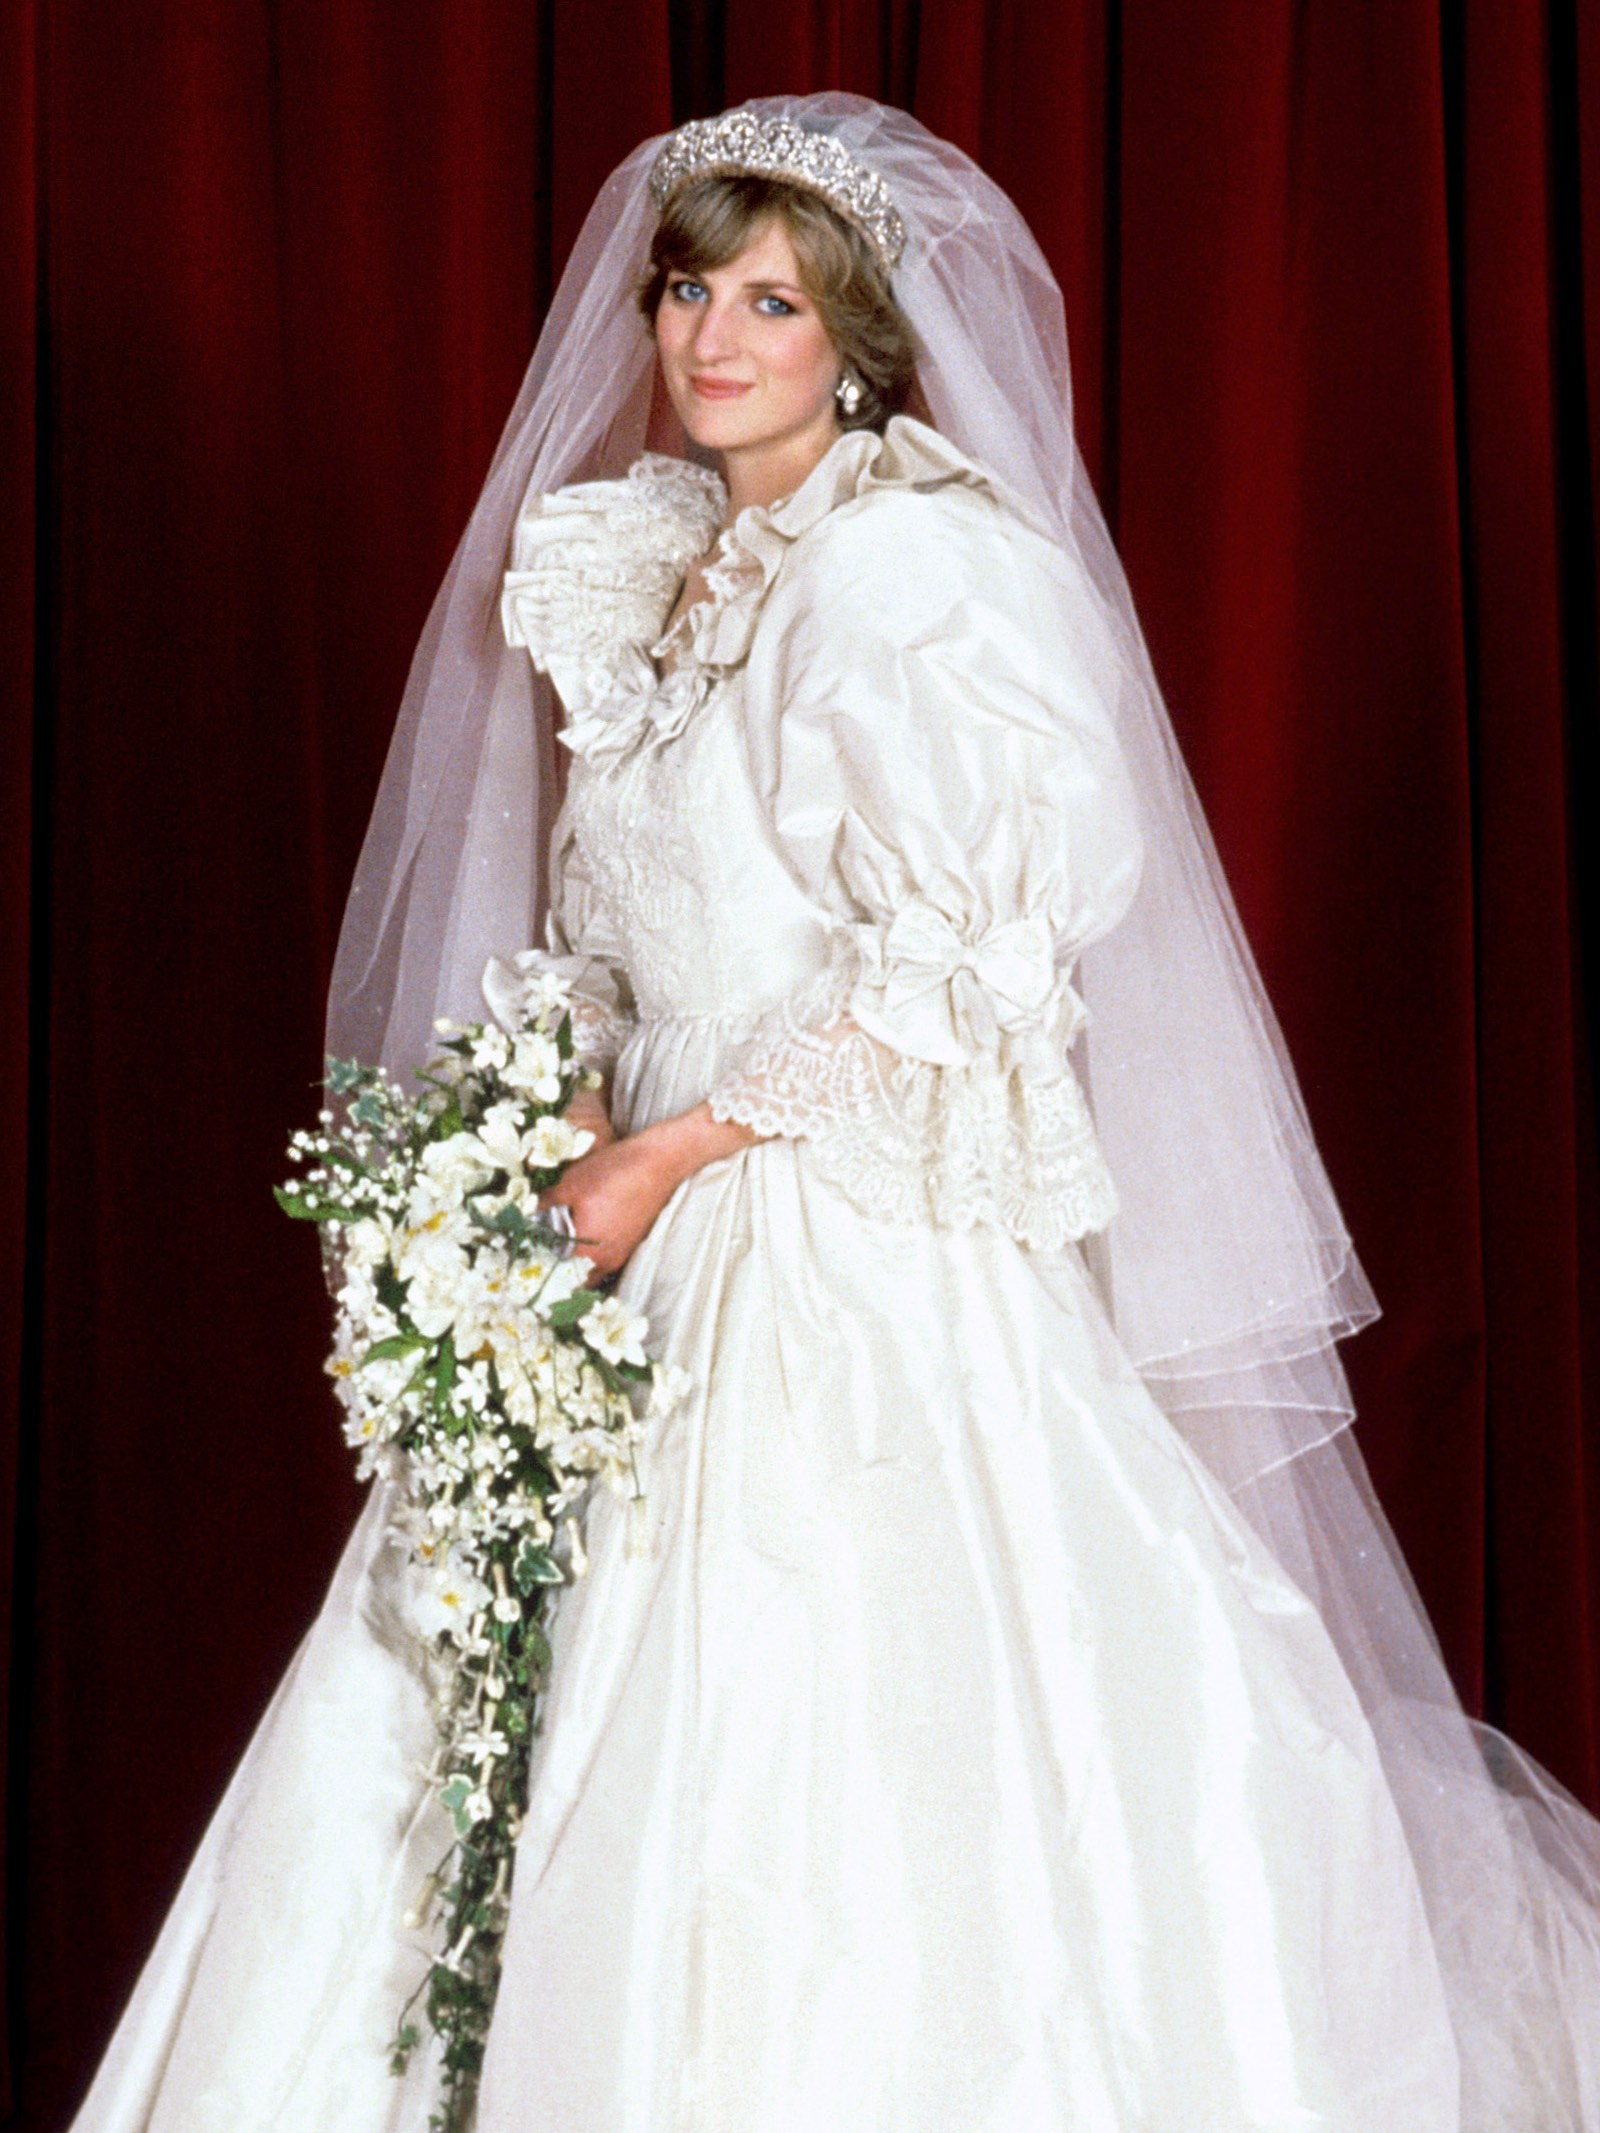 Meghan Markle S Wedding Dress And Its Place In Royal Fashion History